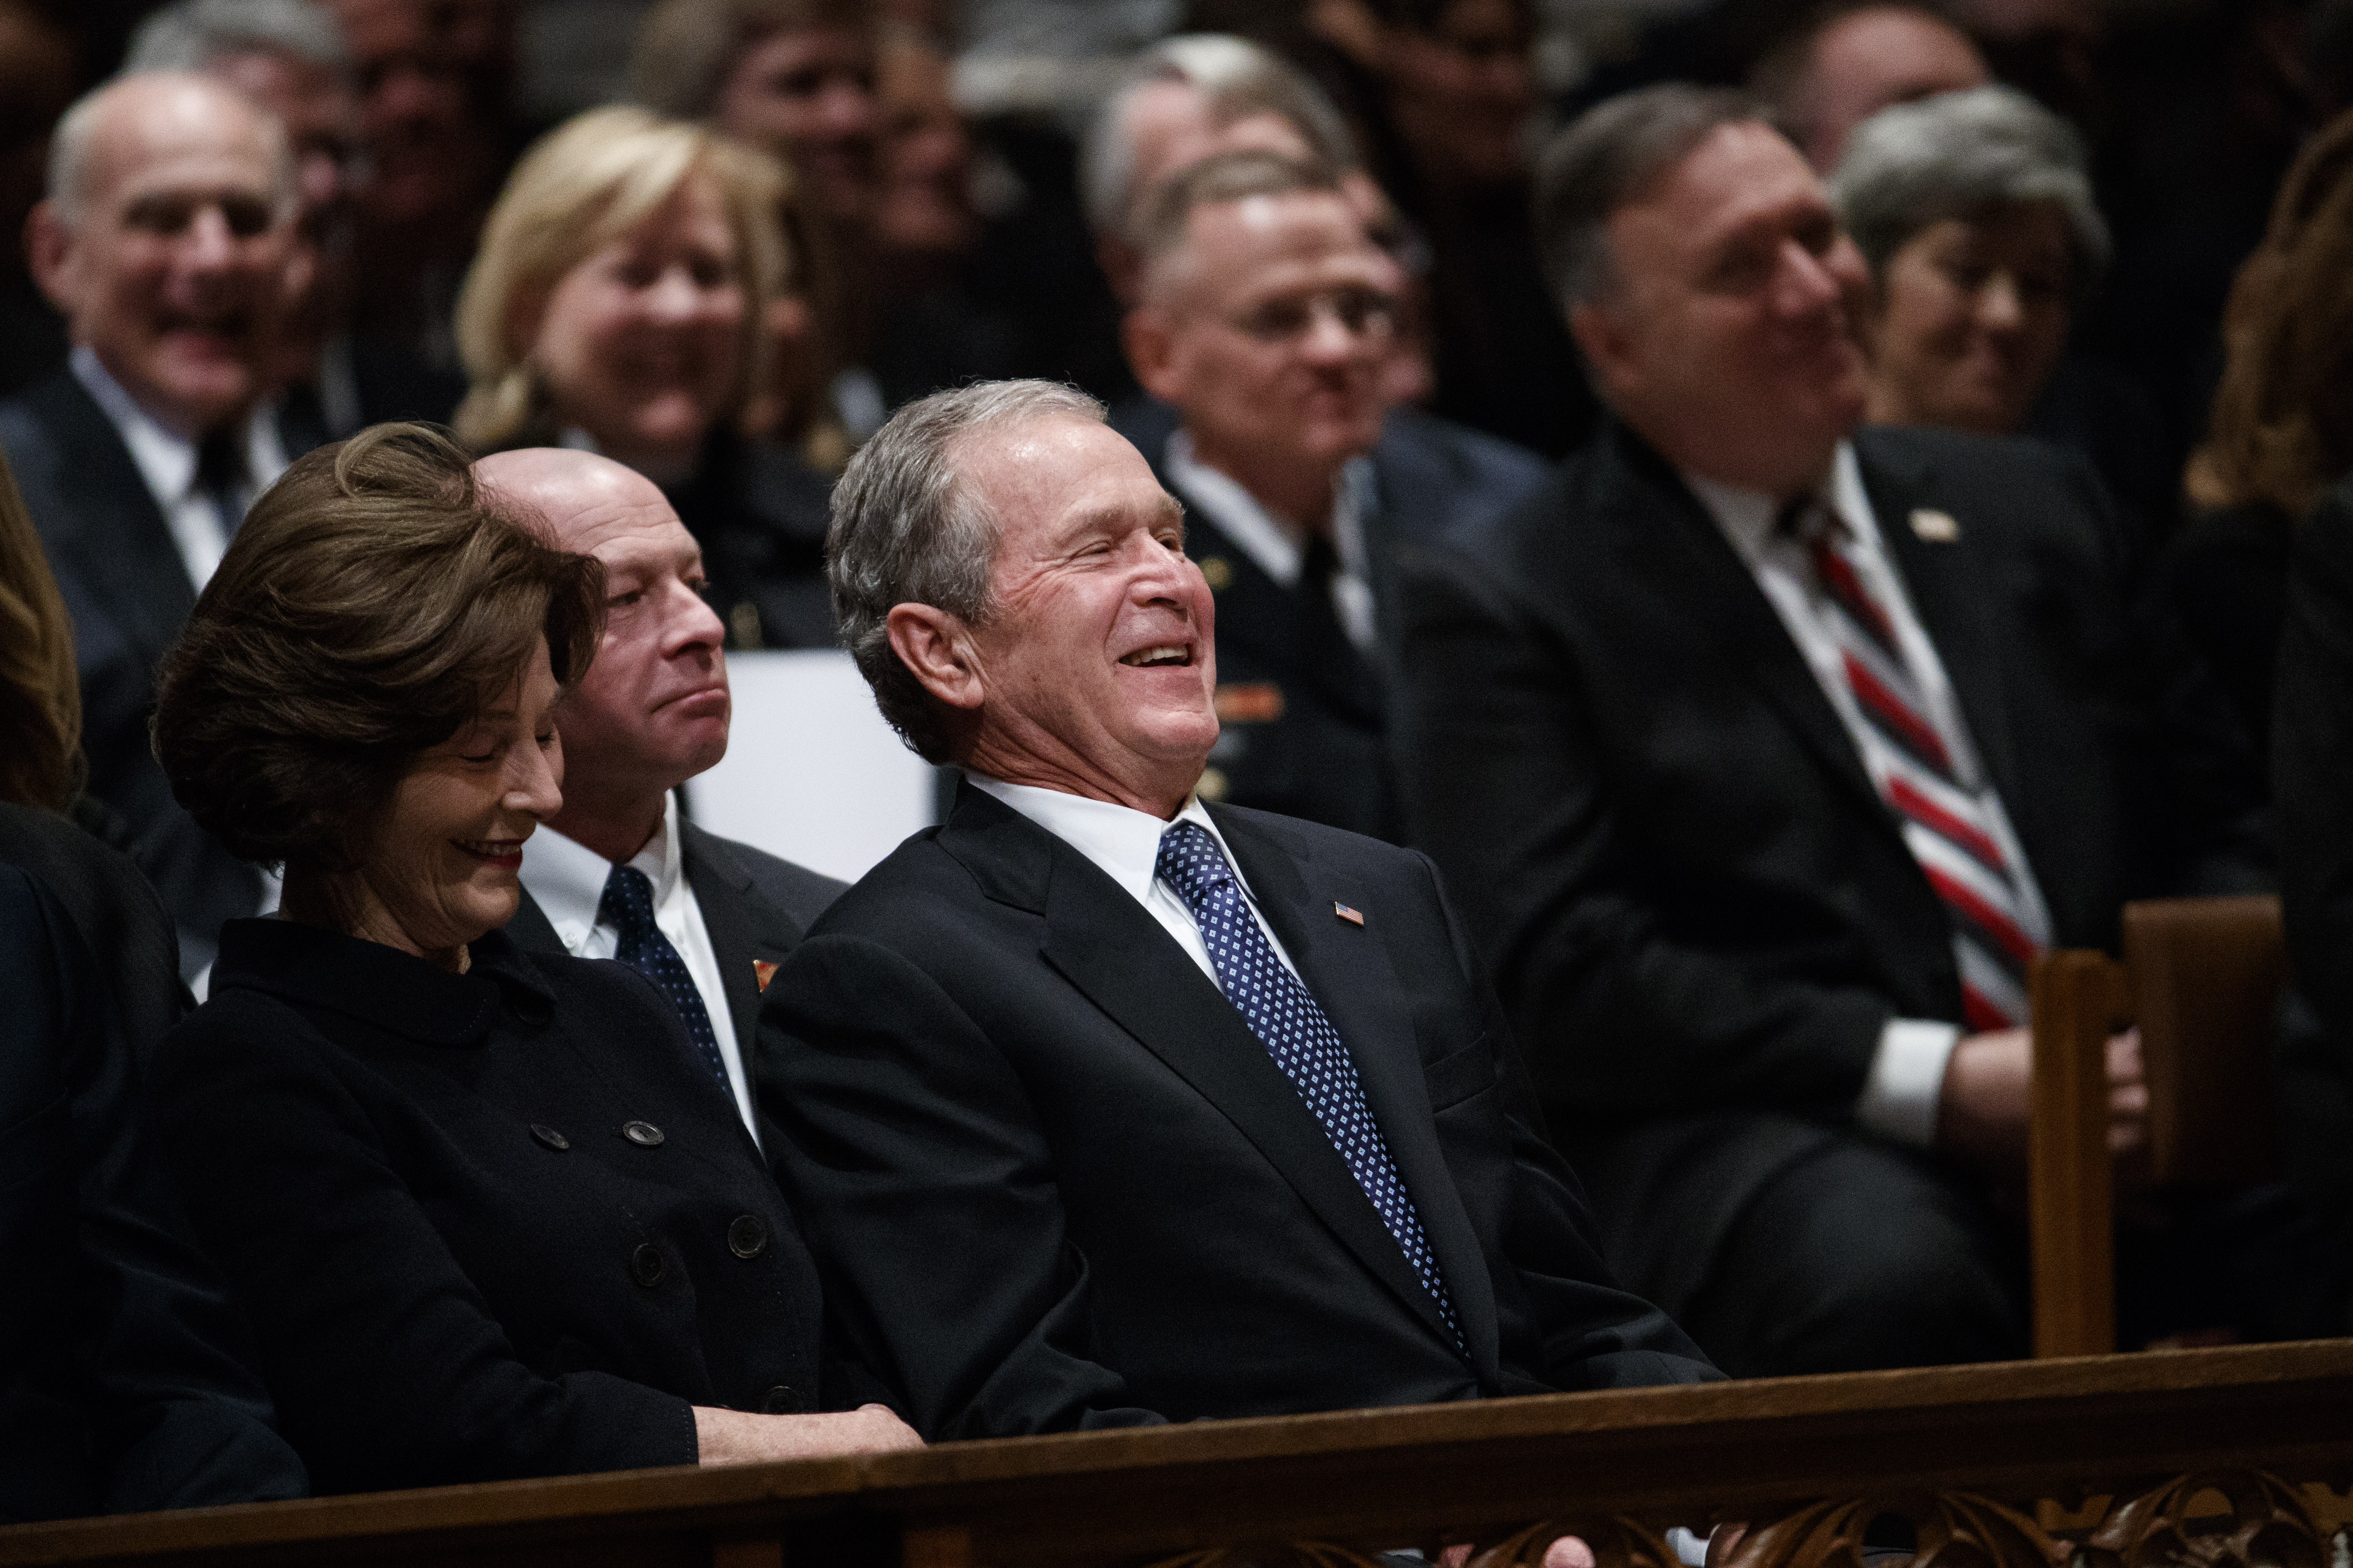 Former President George W. Bush and Laura Bush share a laugh as a story is told about his father, former President George H.W. Bush, during a State Funeral at the National Cathedral, Wednesday, Dec. 5, 2018, in Washington. (AP Photo/Evan Vucci)